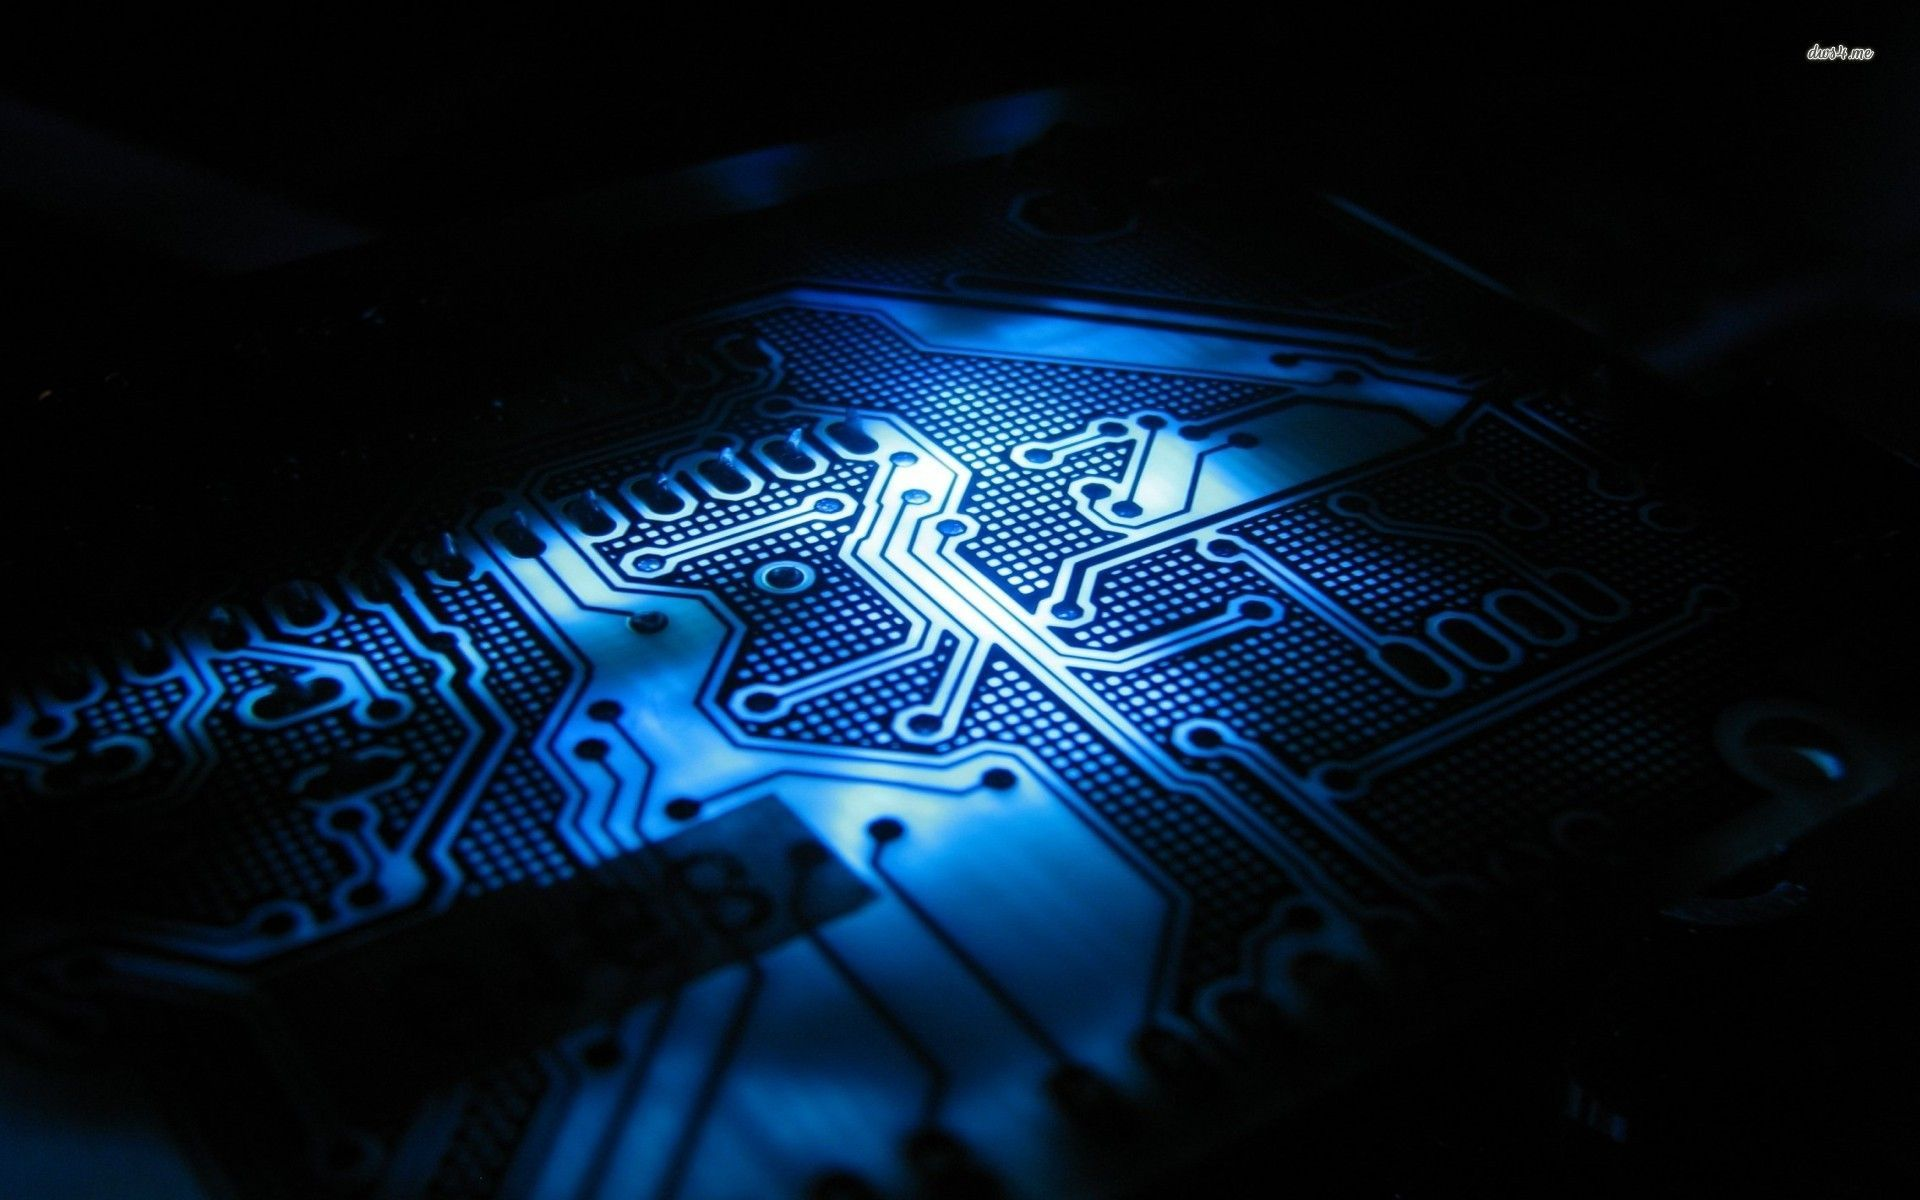 Electronic Circuit Wallpapers (39 Wallpapers) – Adorable Wallpapers